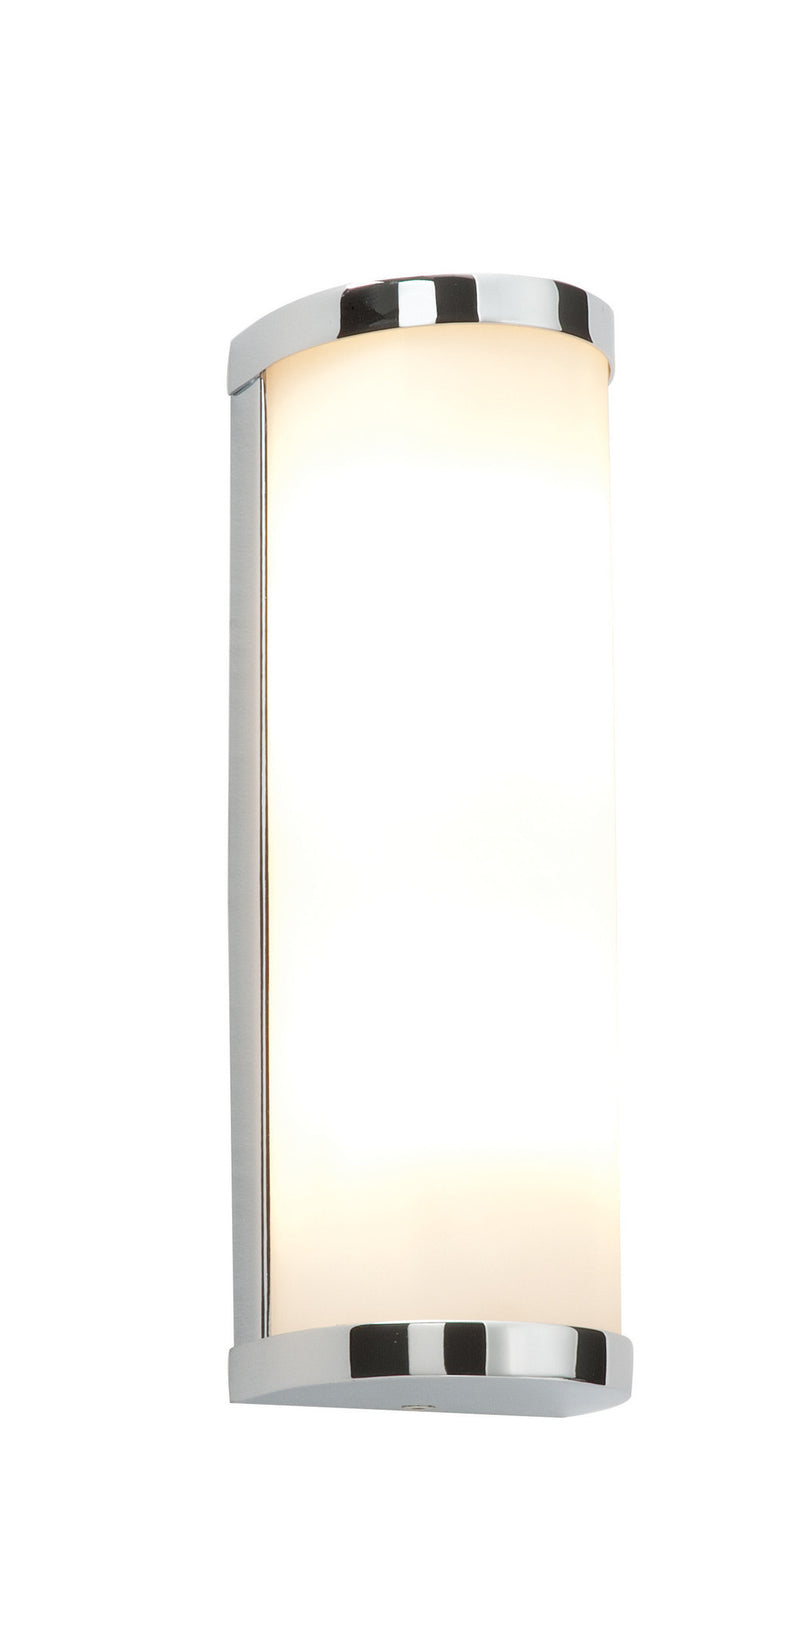 Ice Twin Wall Light - bathroomlightsdirect